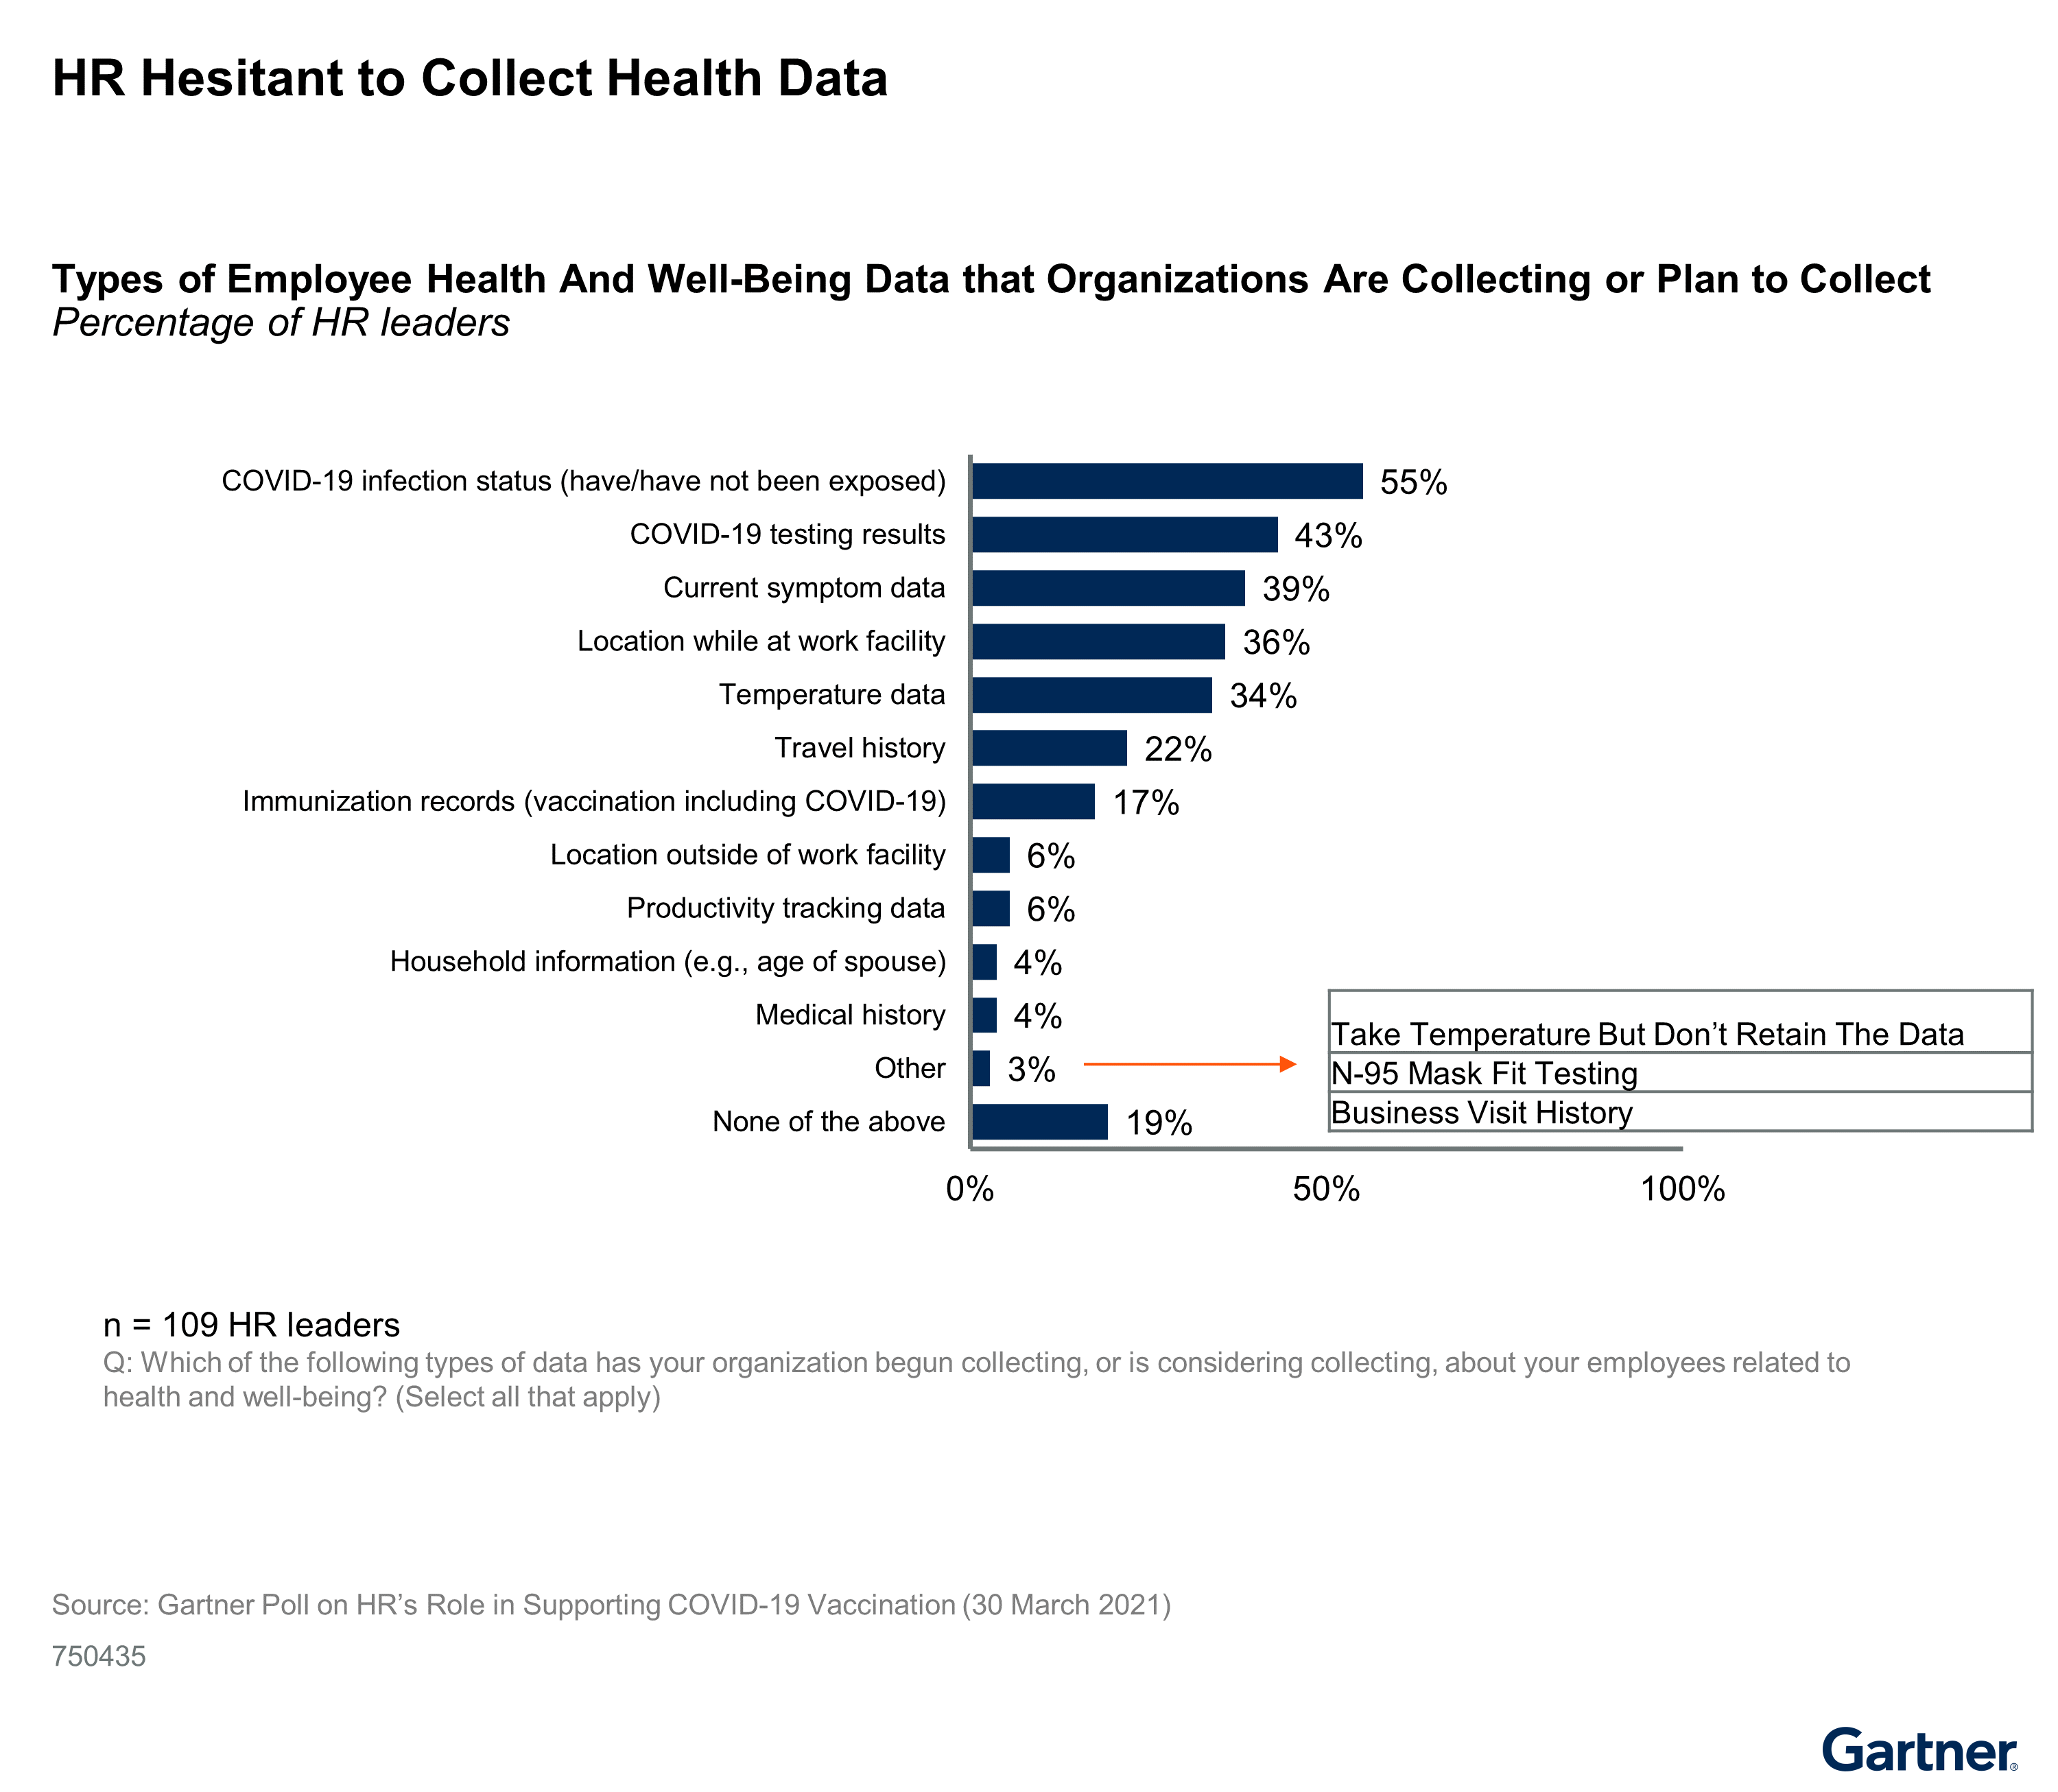 Figure 2: HR Hesitant to Collect Health Data